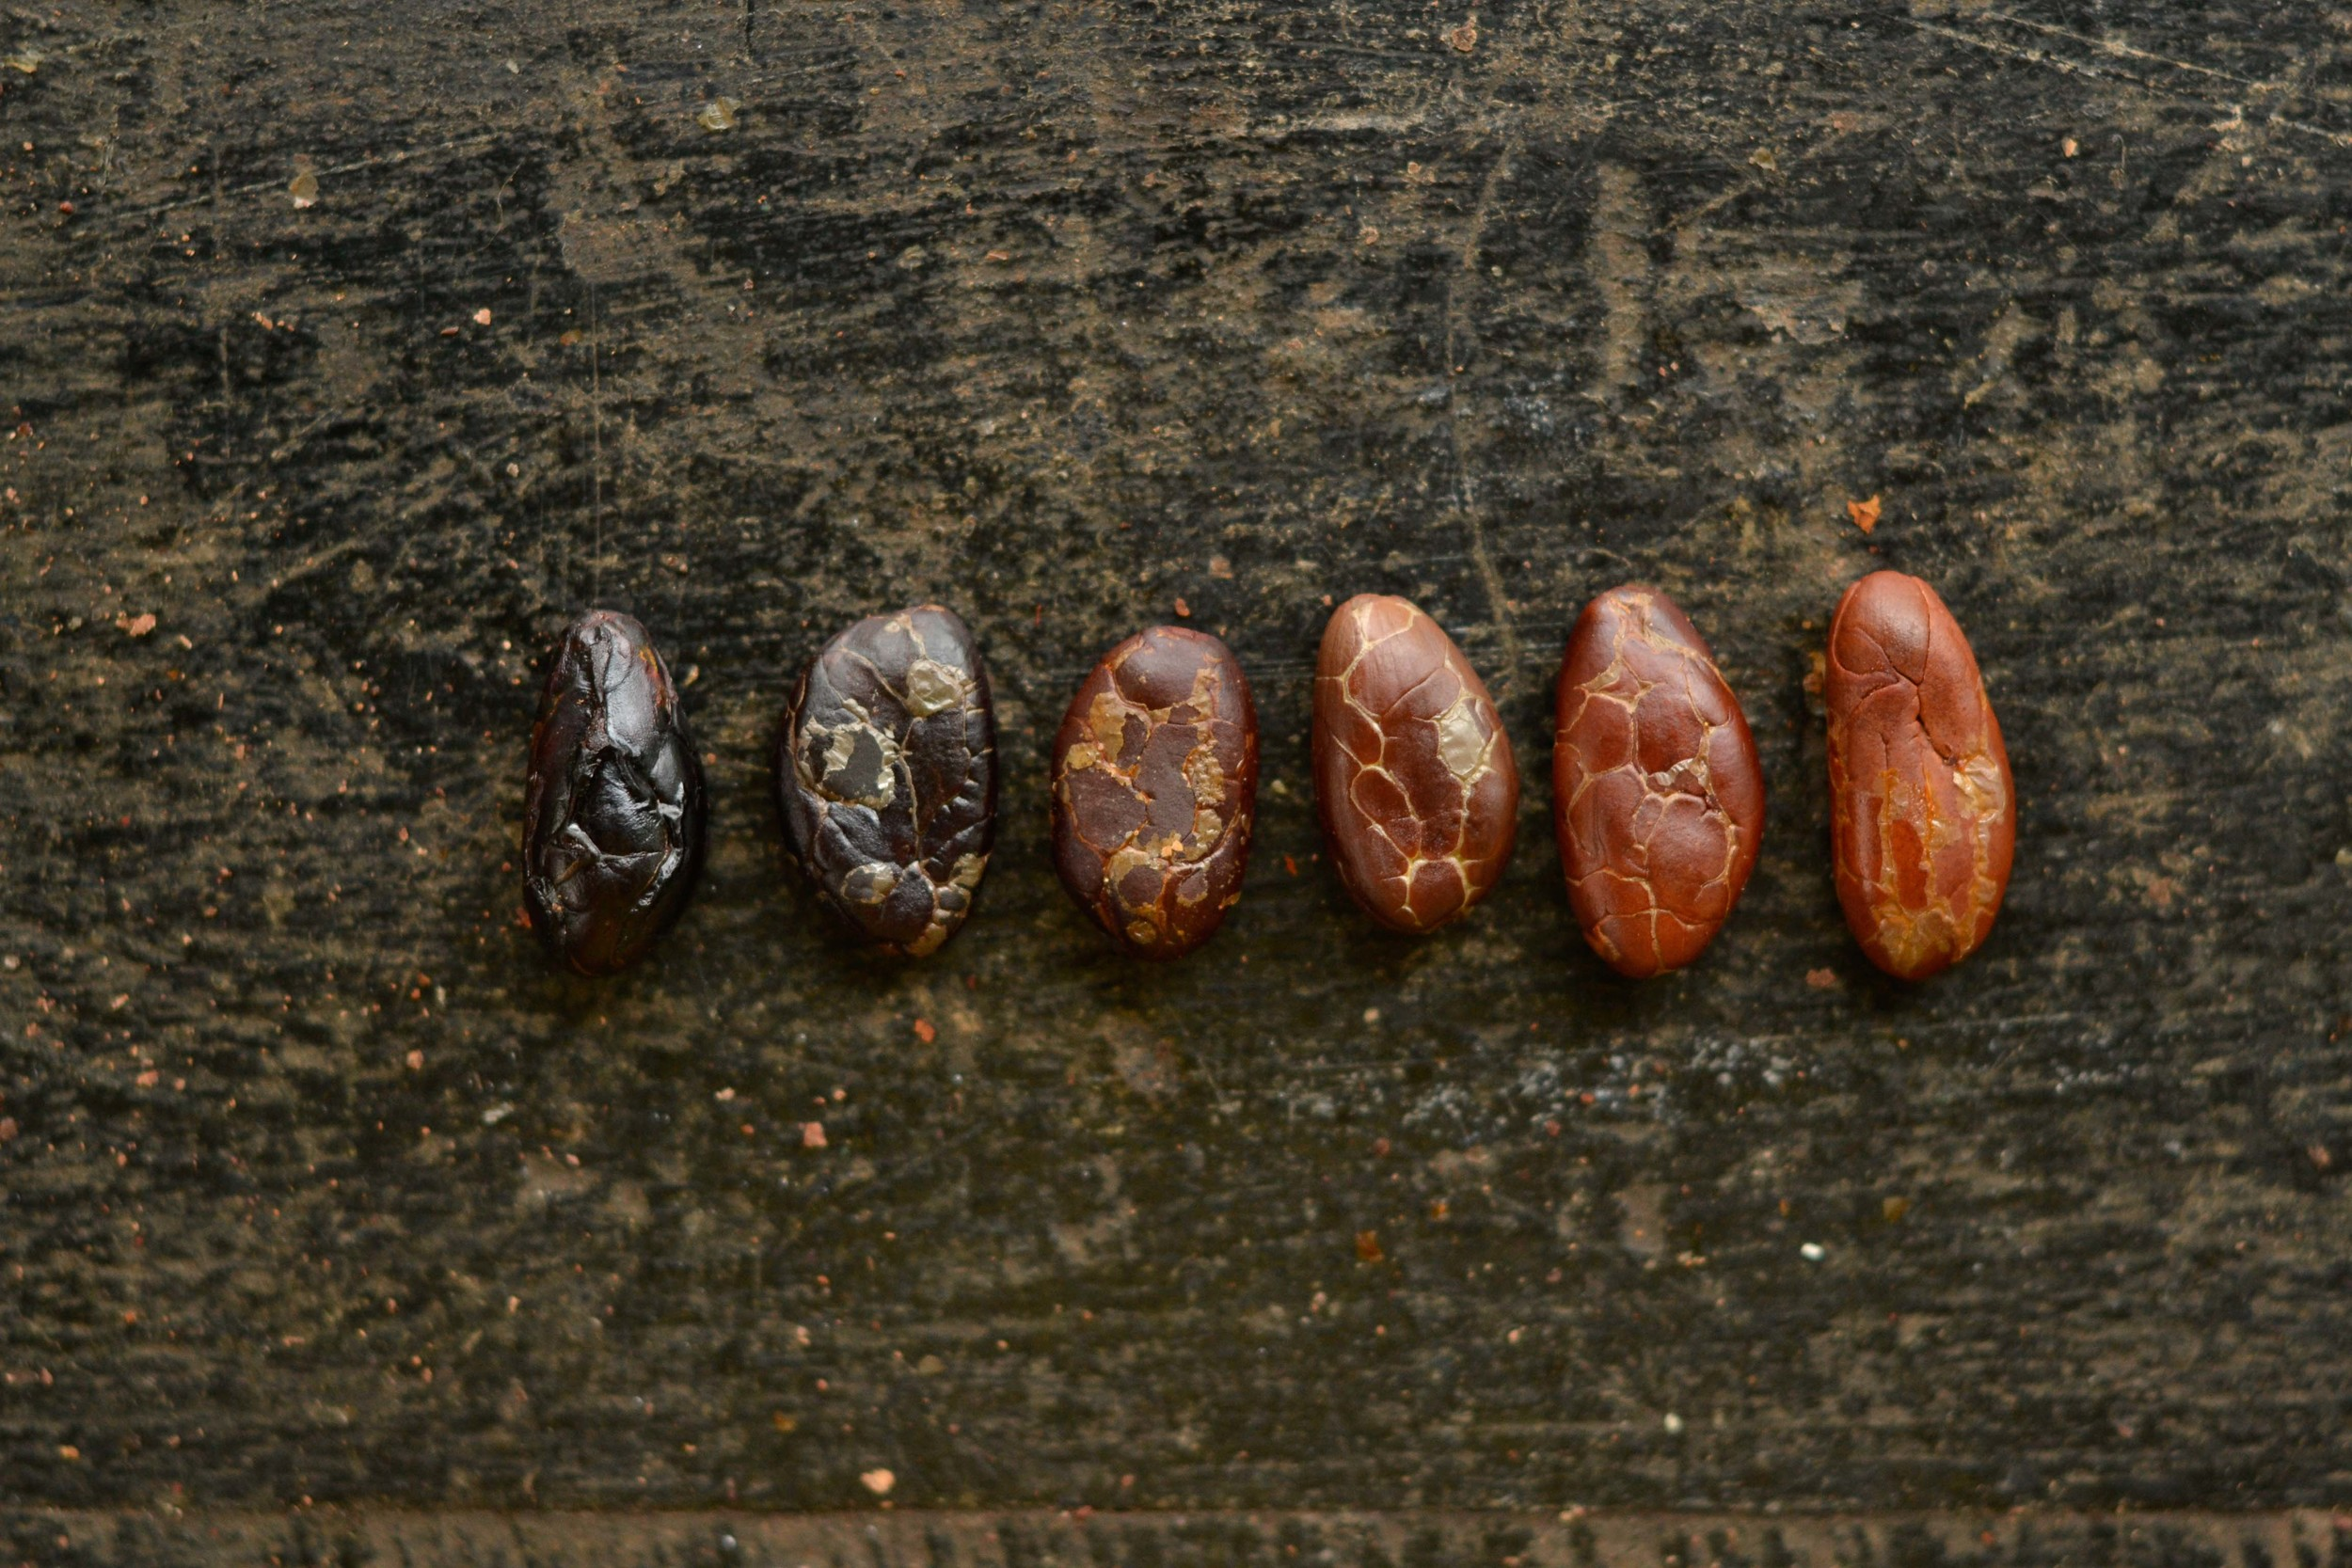 The spectrum of cacao colors is due to different types of cacao and varying fermentation durations